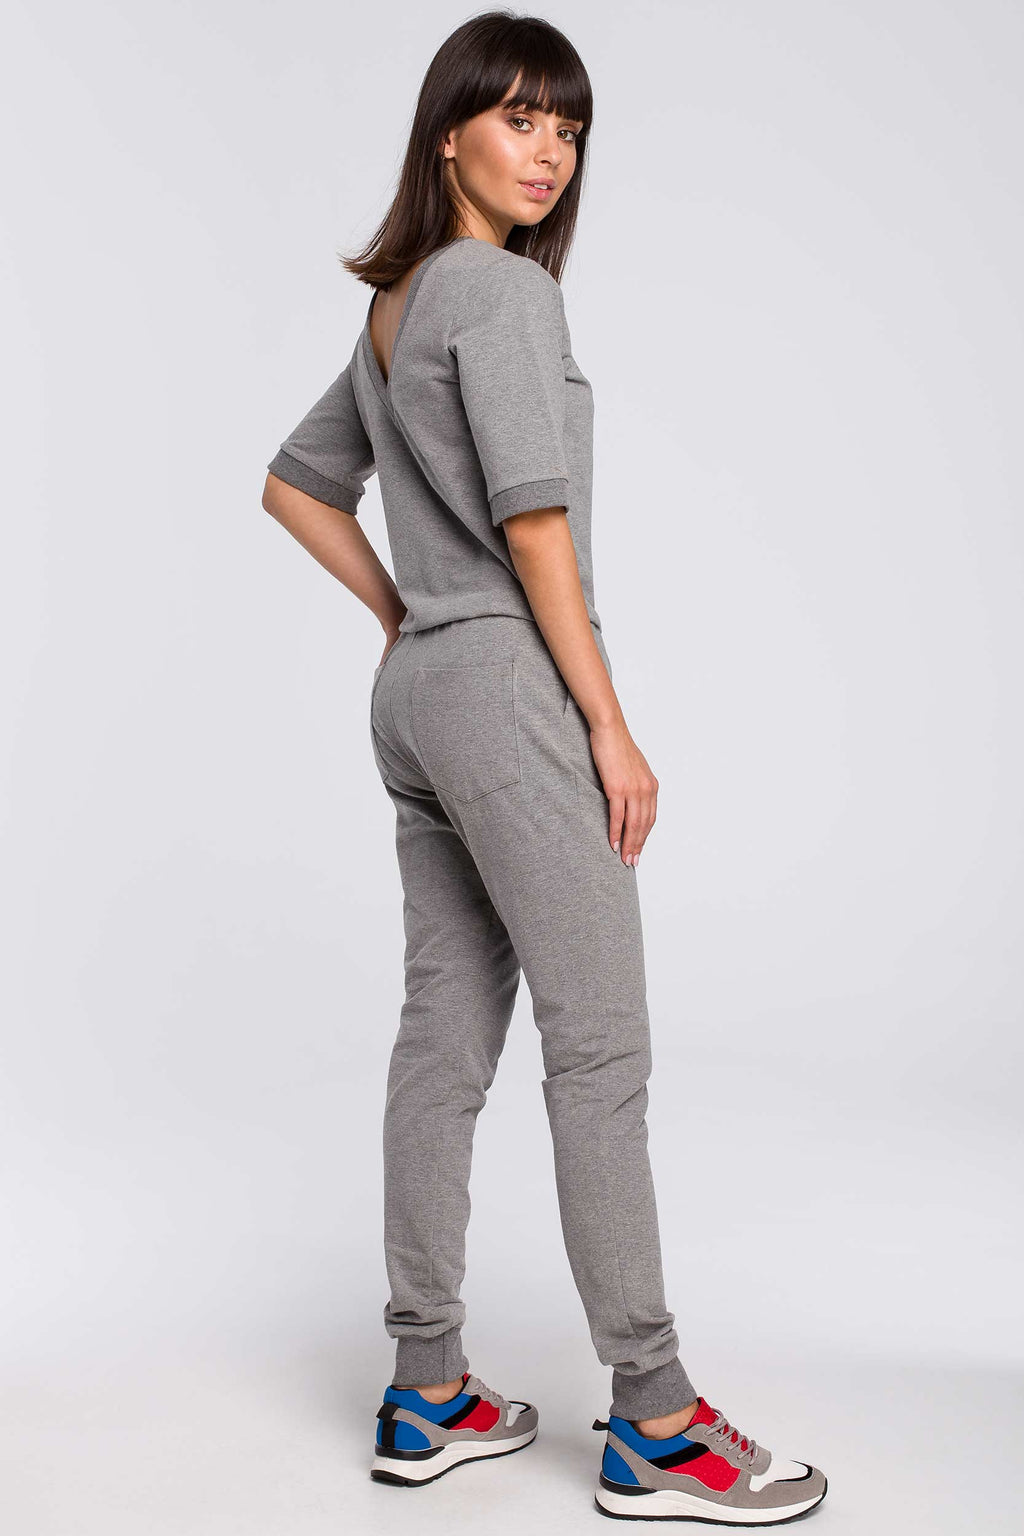 Grey V Neck Back Cotton Jumpsuit With Elastic Waist - So Chic Boutique